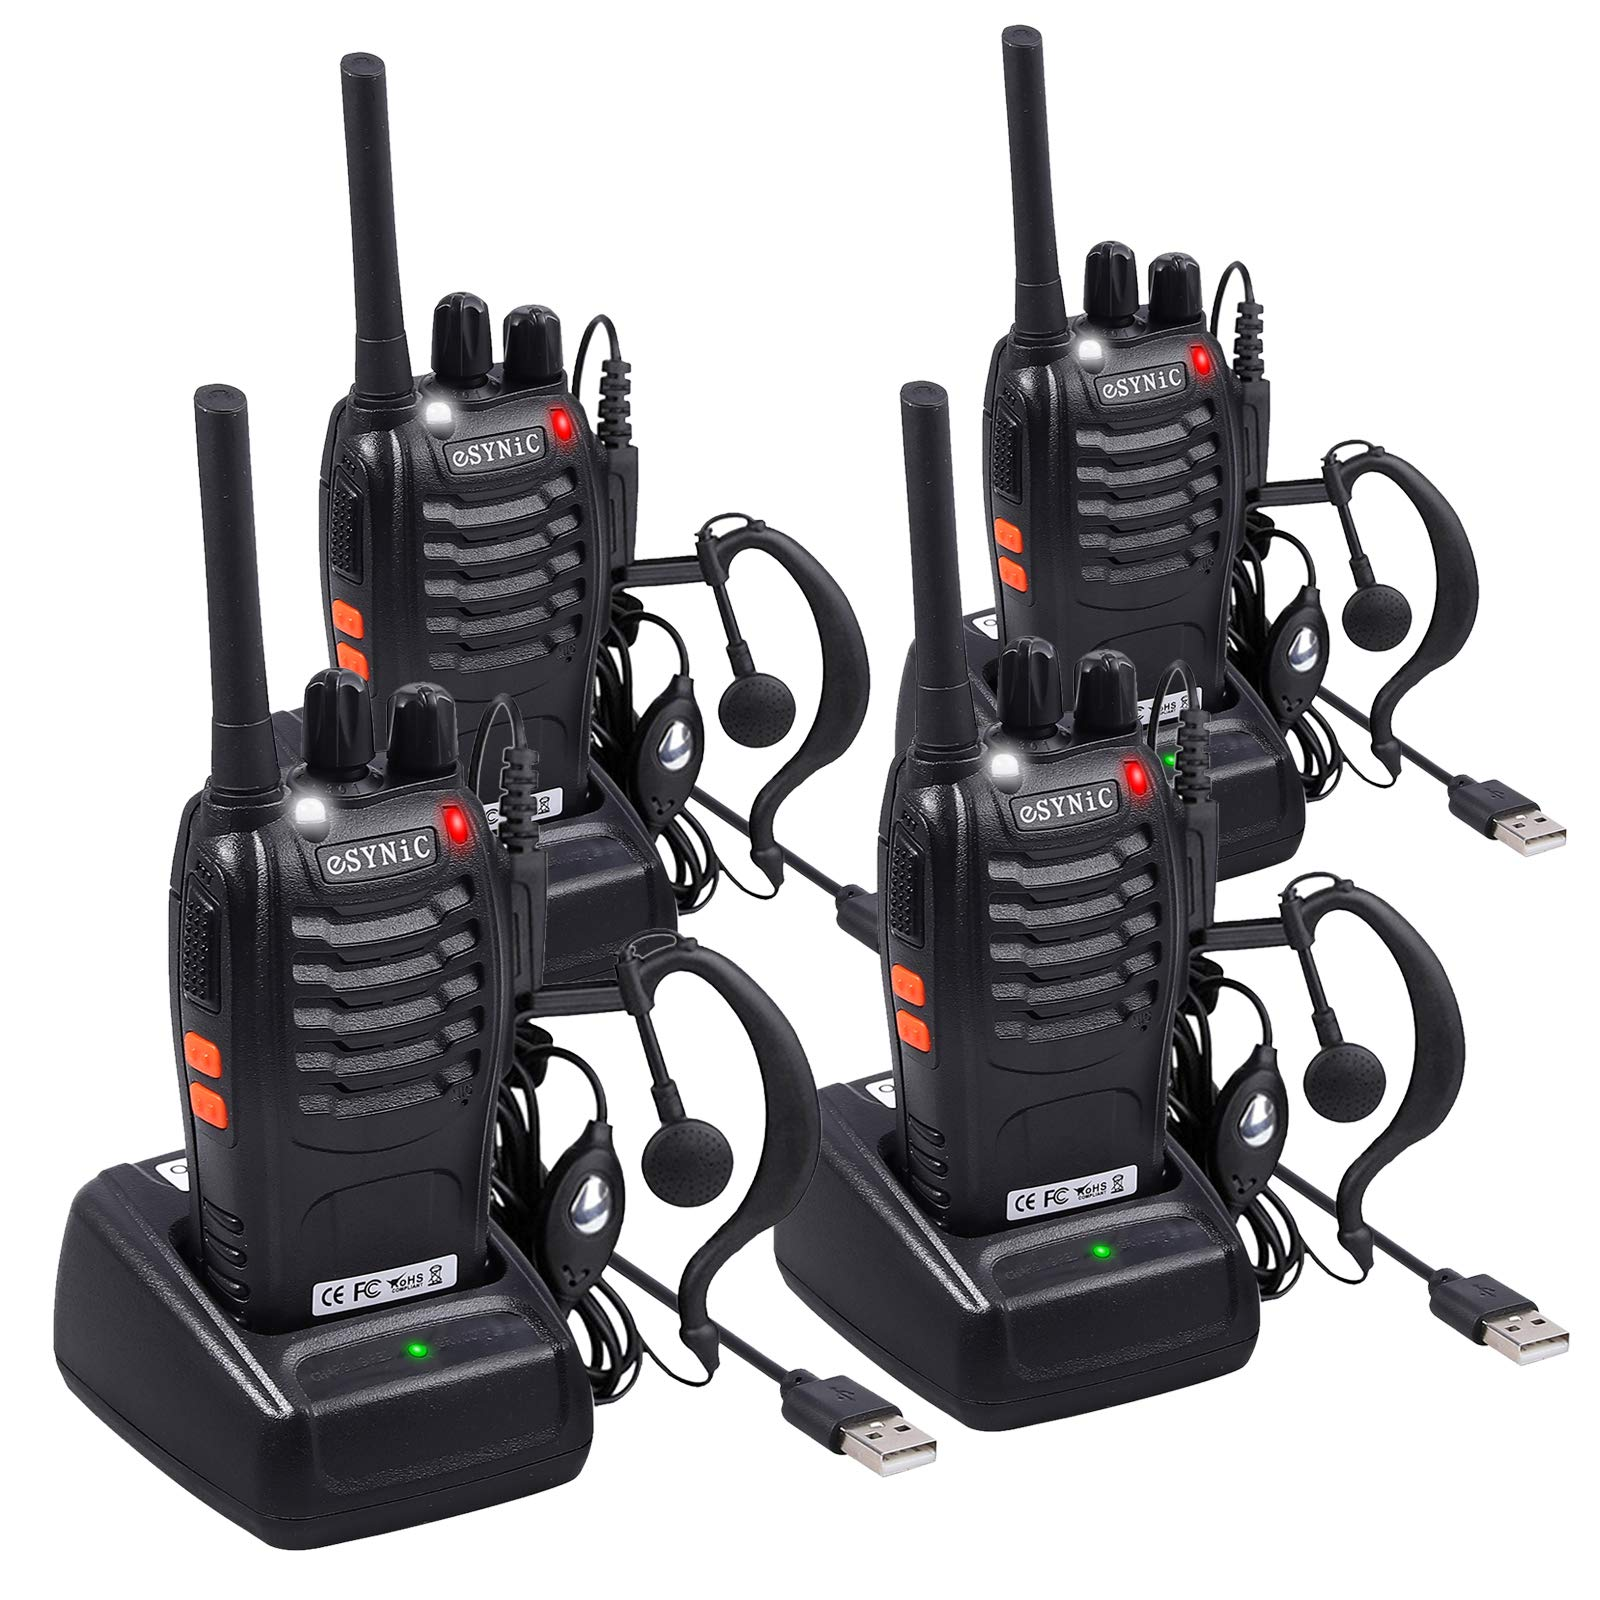 eSynic 4 pcs Rechargeable Walkie Talkies with Earpieces Long Range Two-Way Radio 16 Channel UHF with Flashlight walky Talky Handheld Transceiver USB Charging Included by eSynic